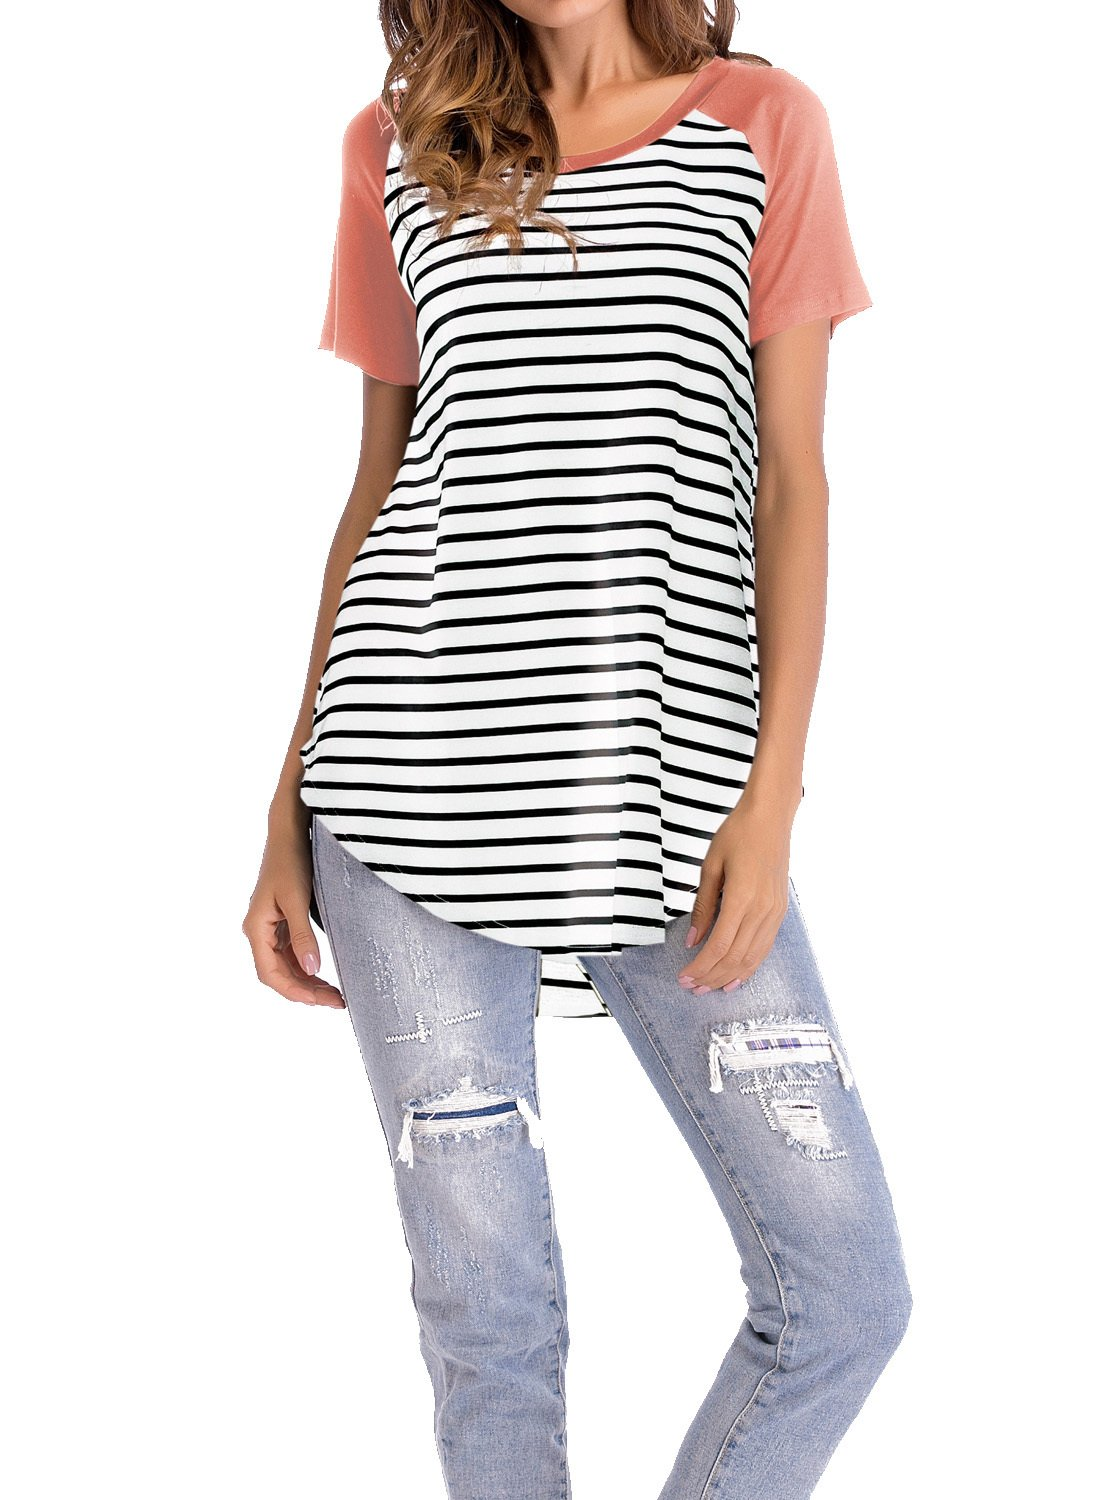 Adreamly Women's White and Black Striped Short Sleeve Baseball T Shirt Sport Tunic Tops Coral Pink 3X-Large